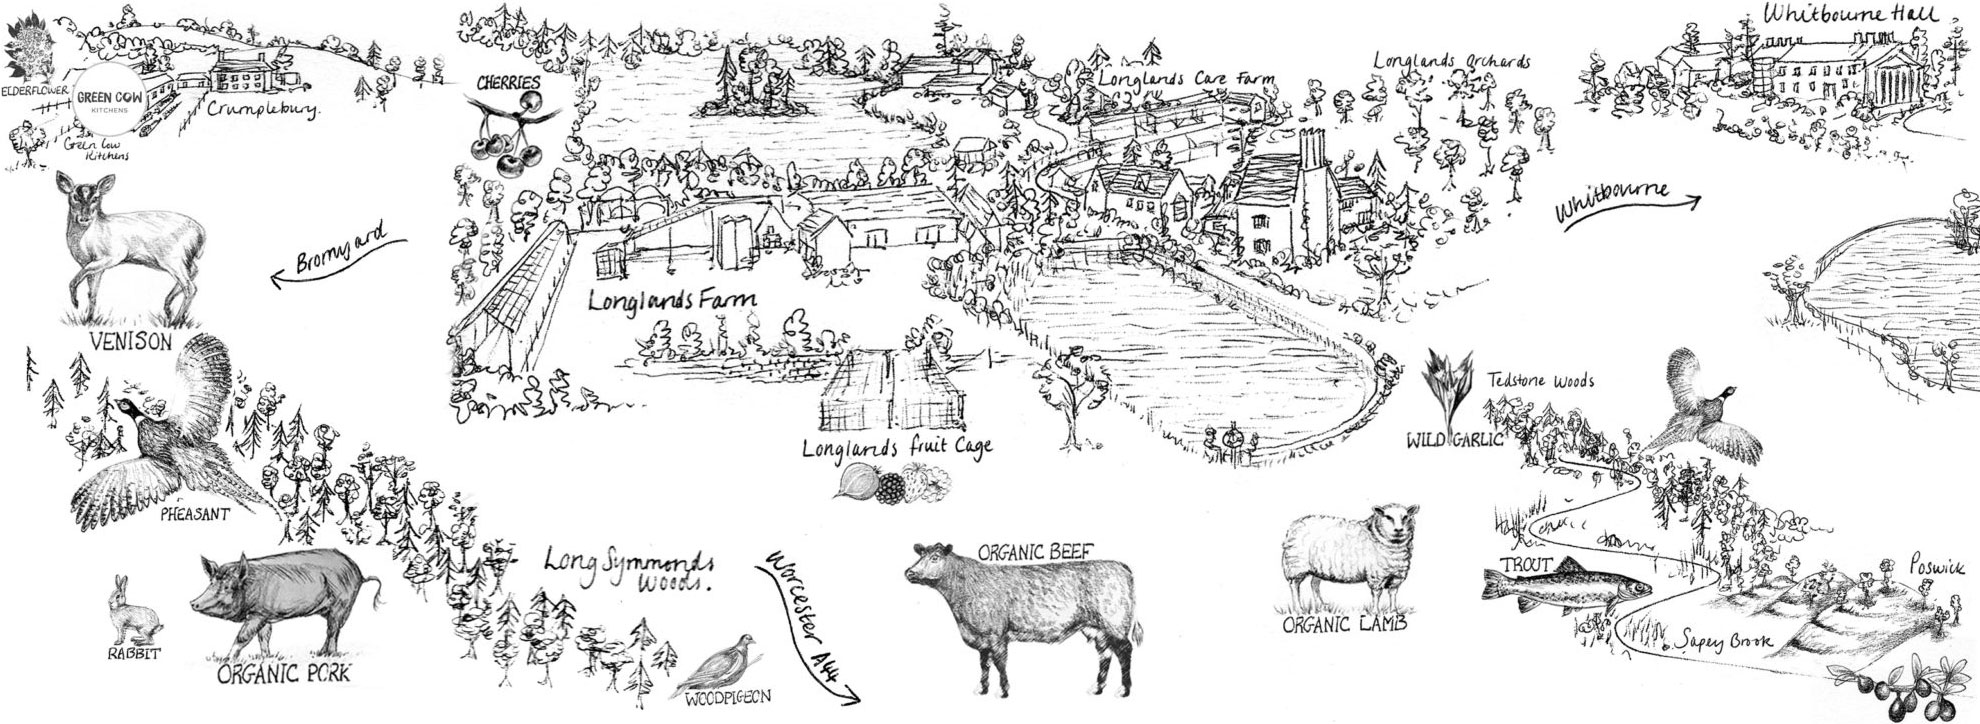 Crumplebury Farm map